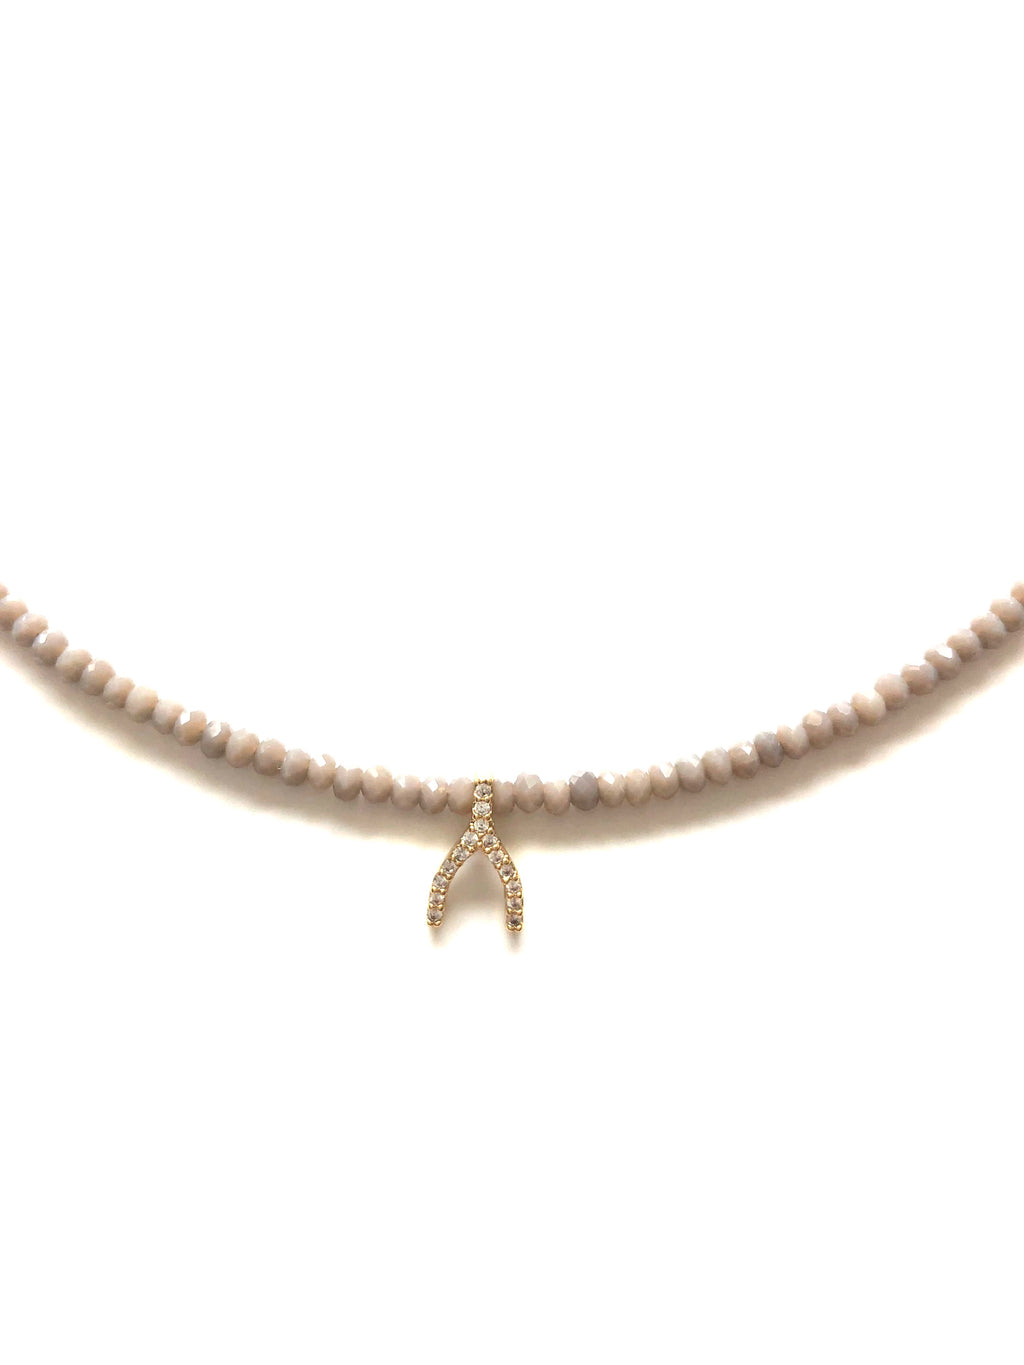 Grey Glass Beads and Pave Wishbone Necklace